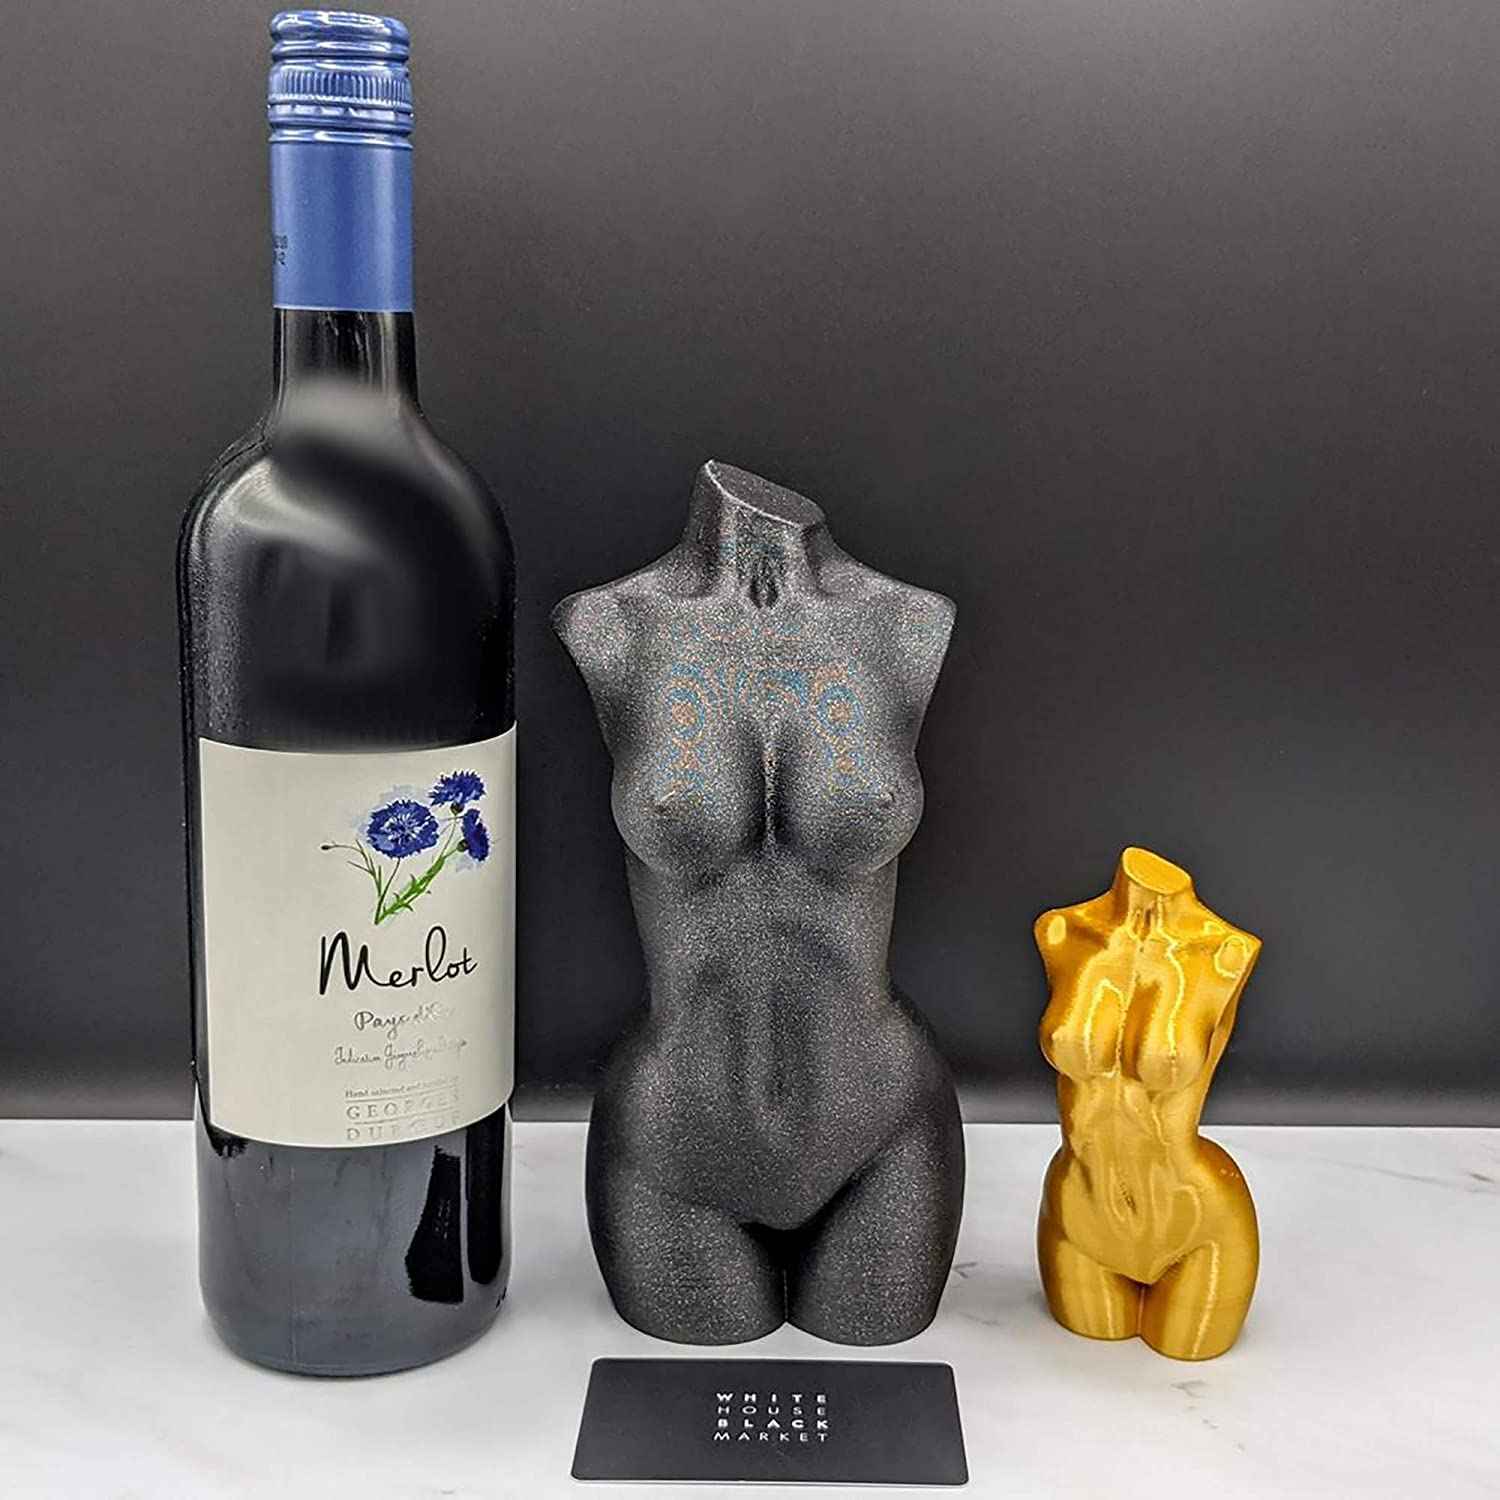 High Gloss Finish Female Torso 9-97 Shiny Mold Nude Woman Body Shape Mold for Resin Crafting Figure Shiney Figurine Silicon Mould